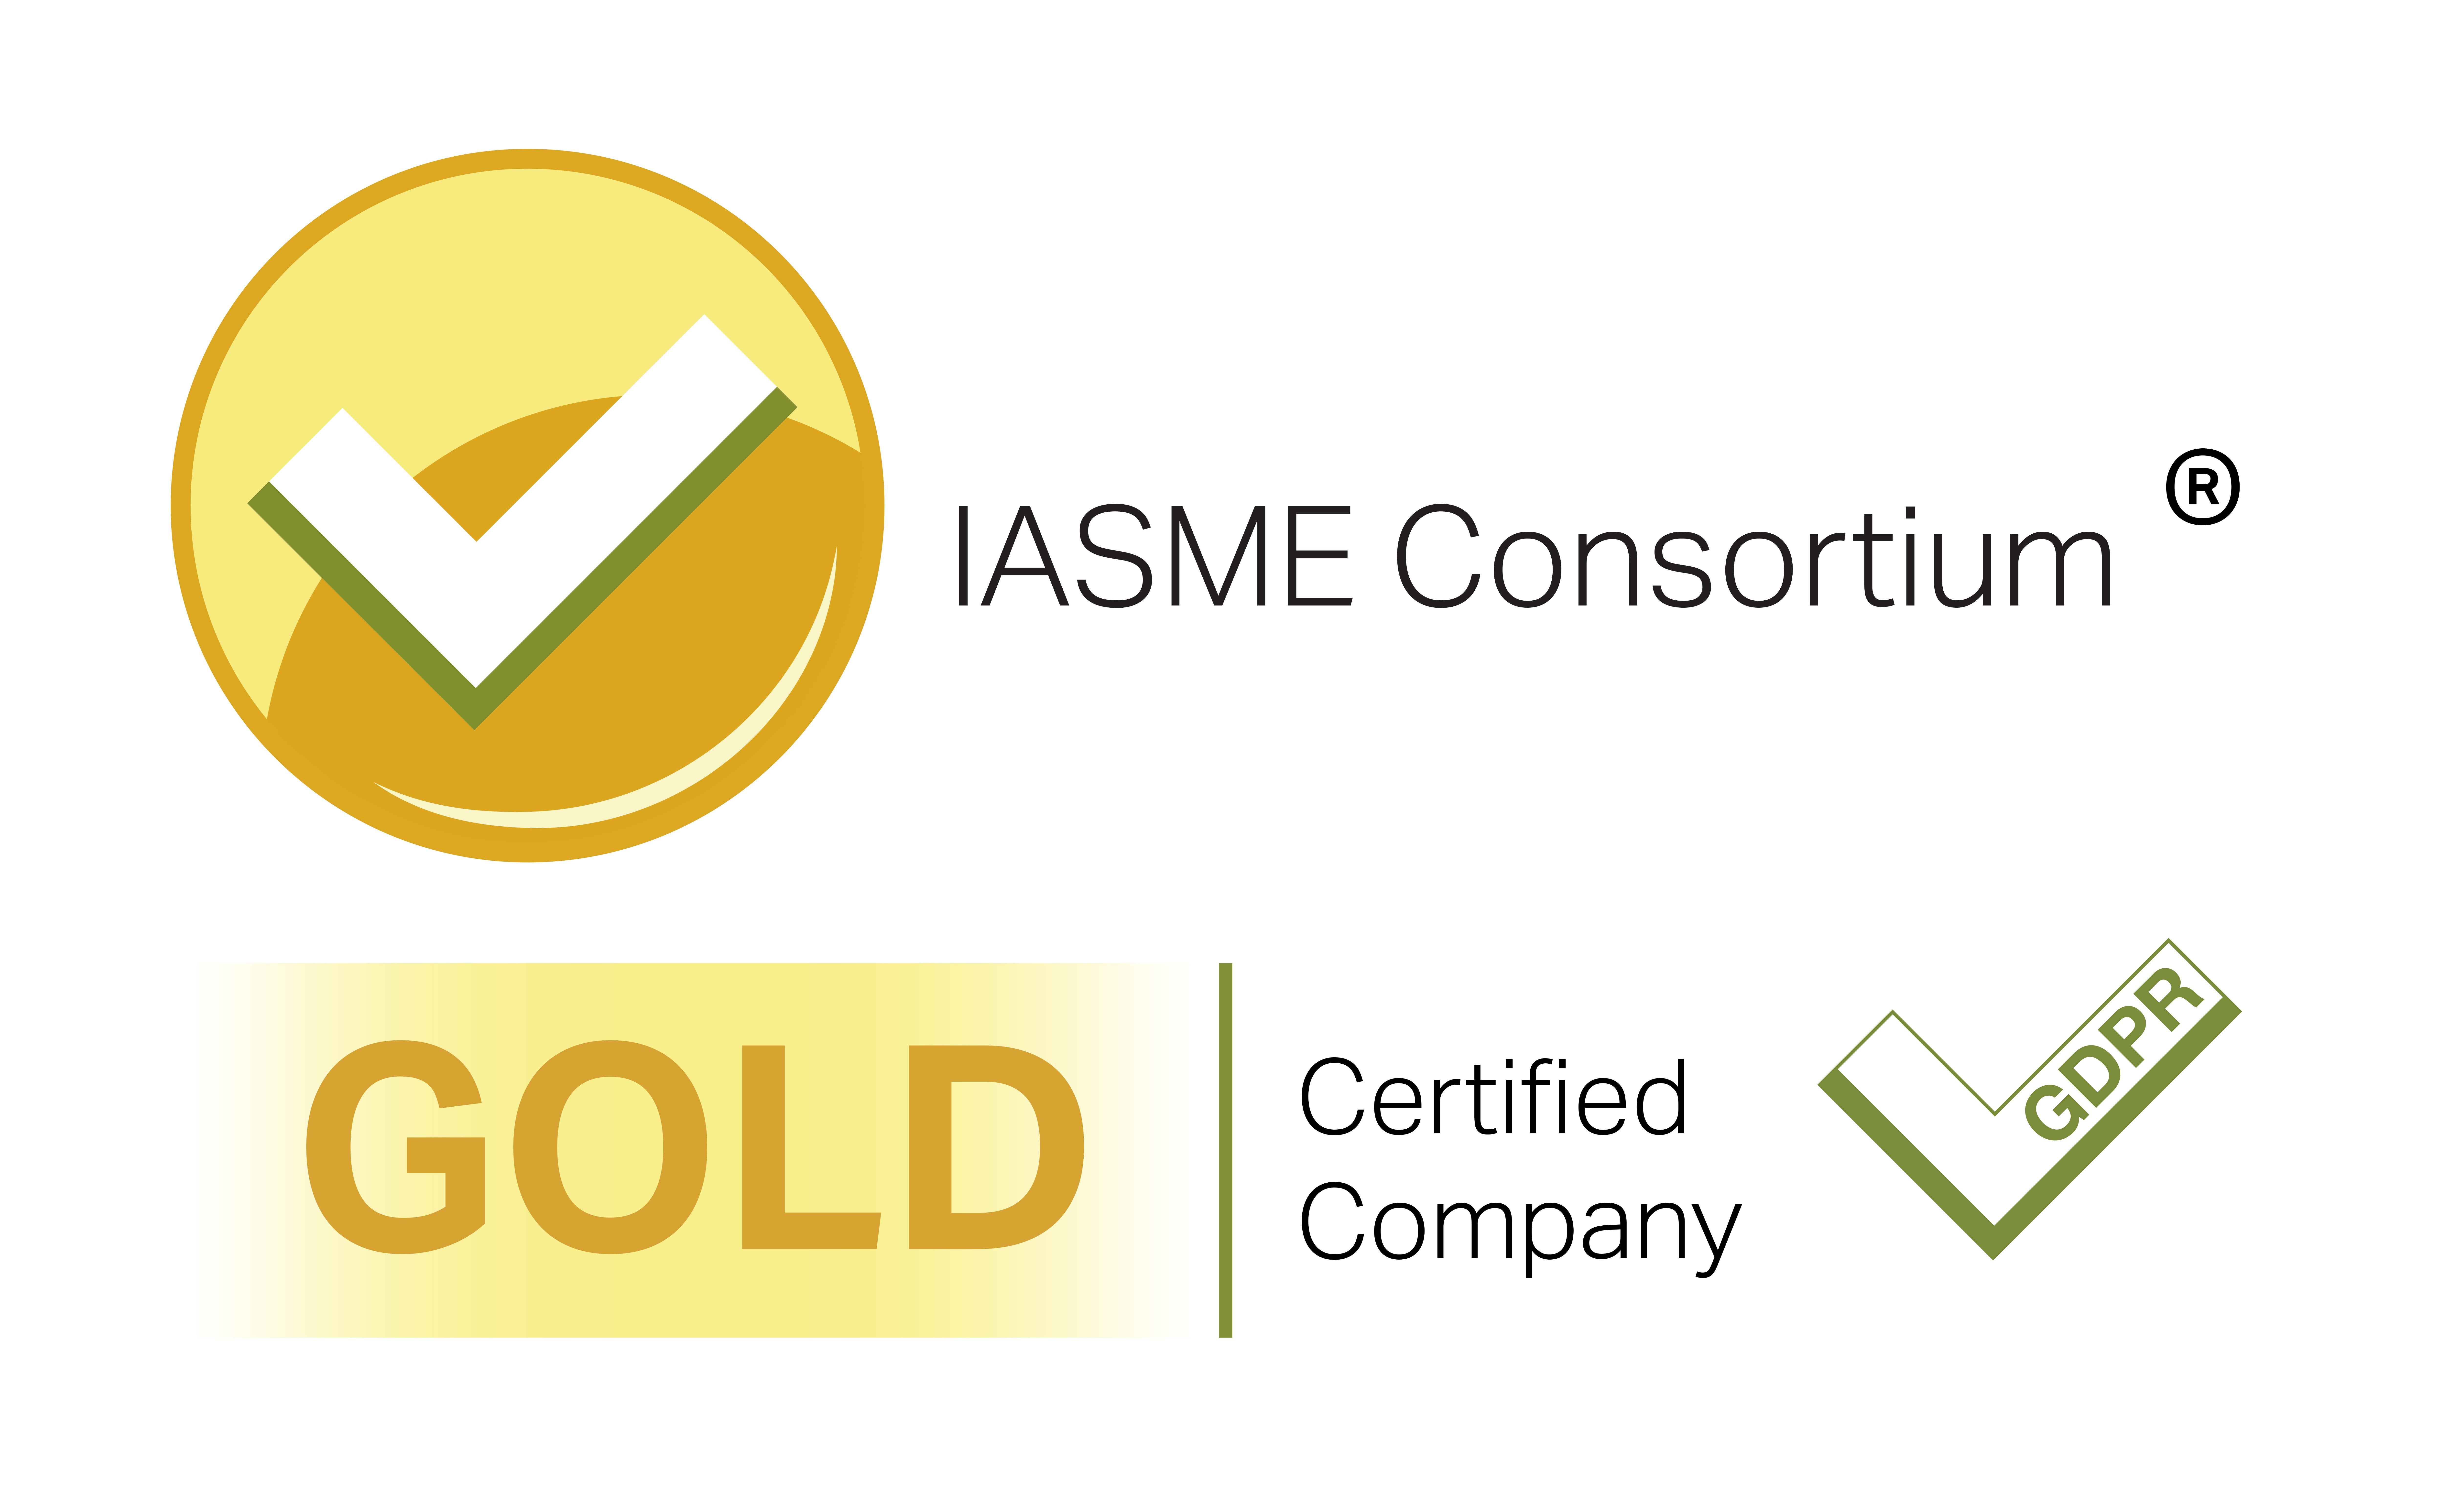 IASME Gold Governance